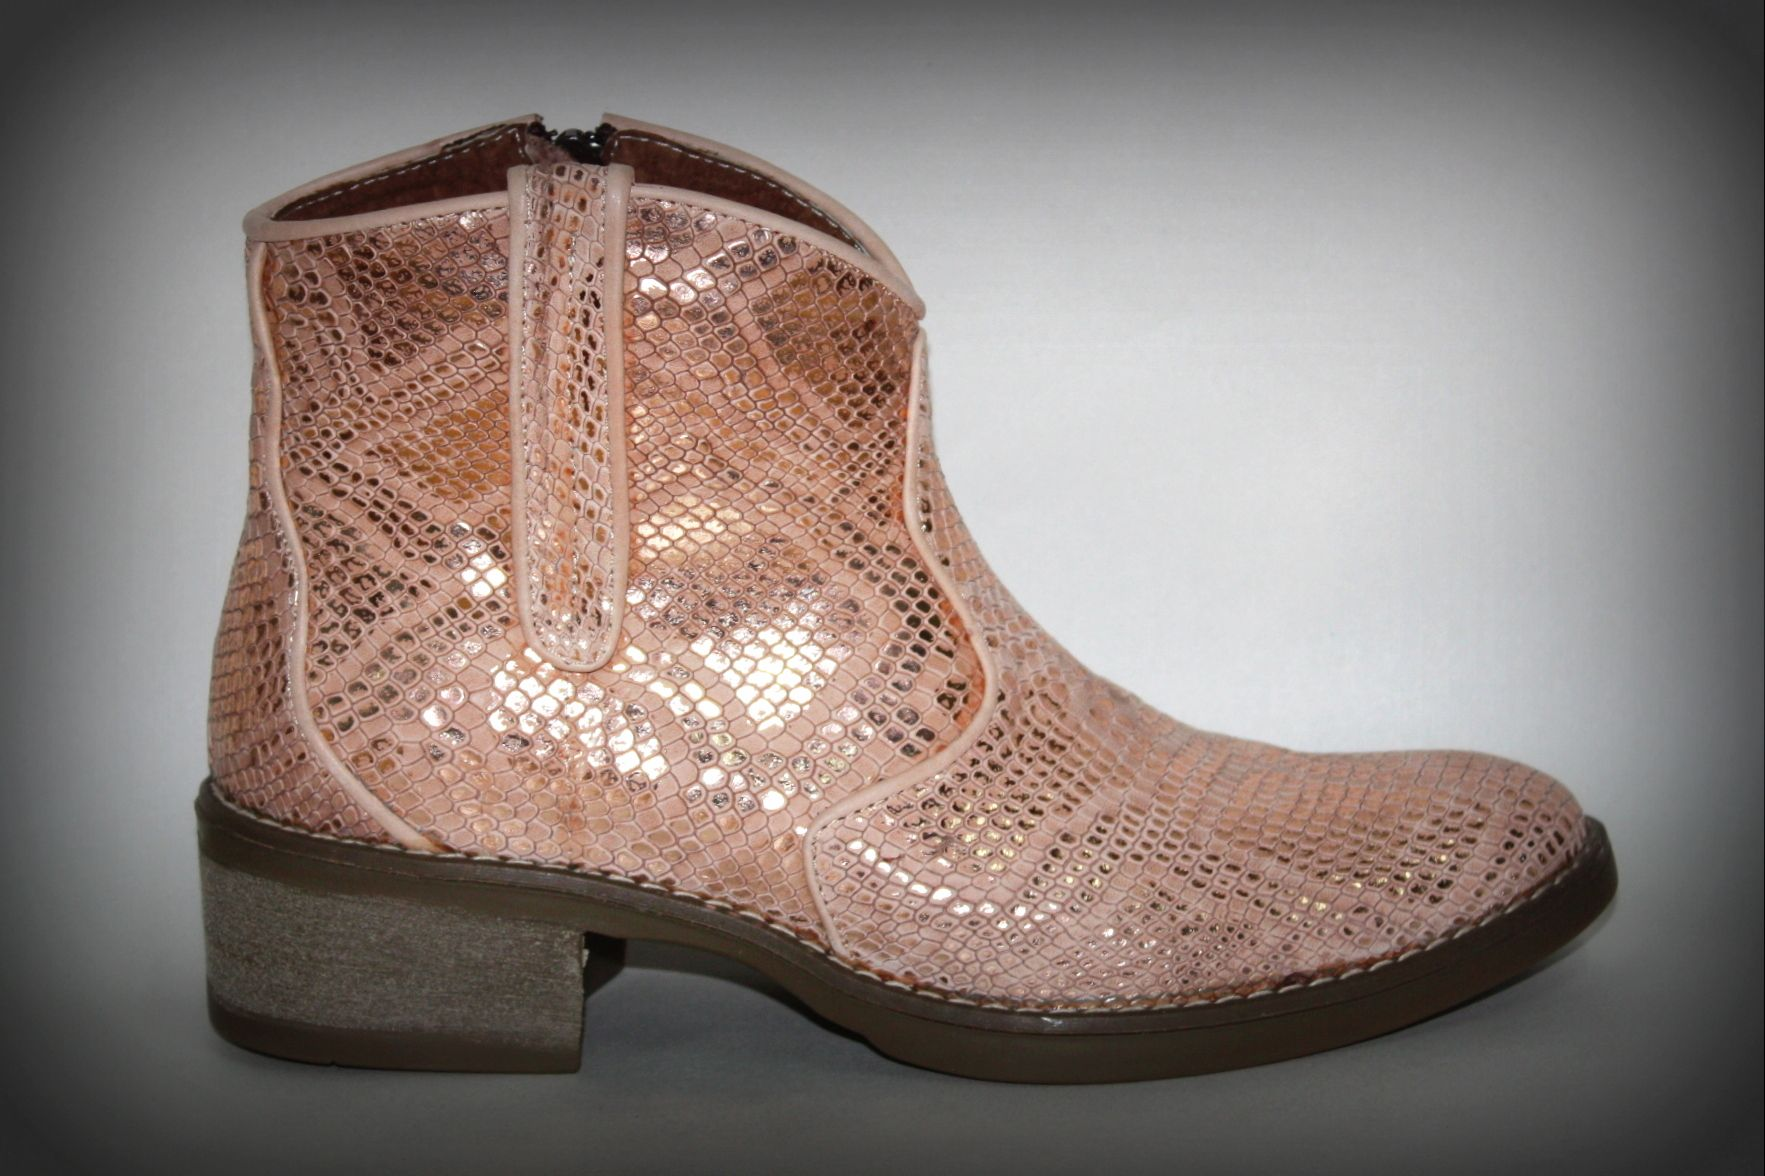 BOTA TEXANA CORTA ART. 1261